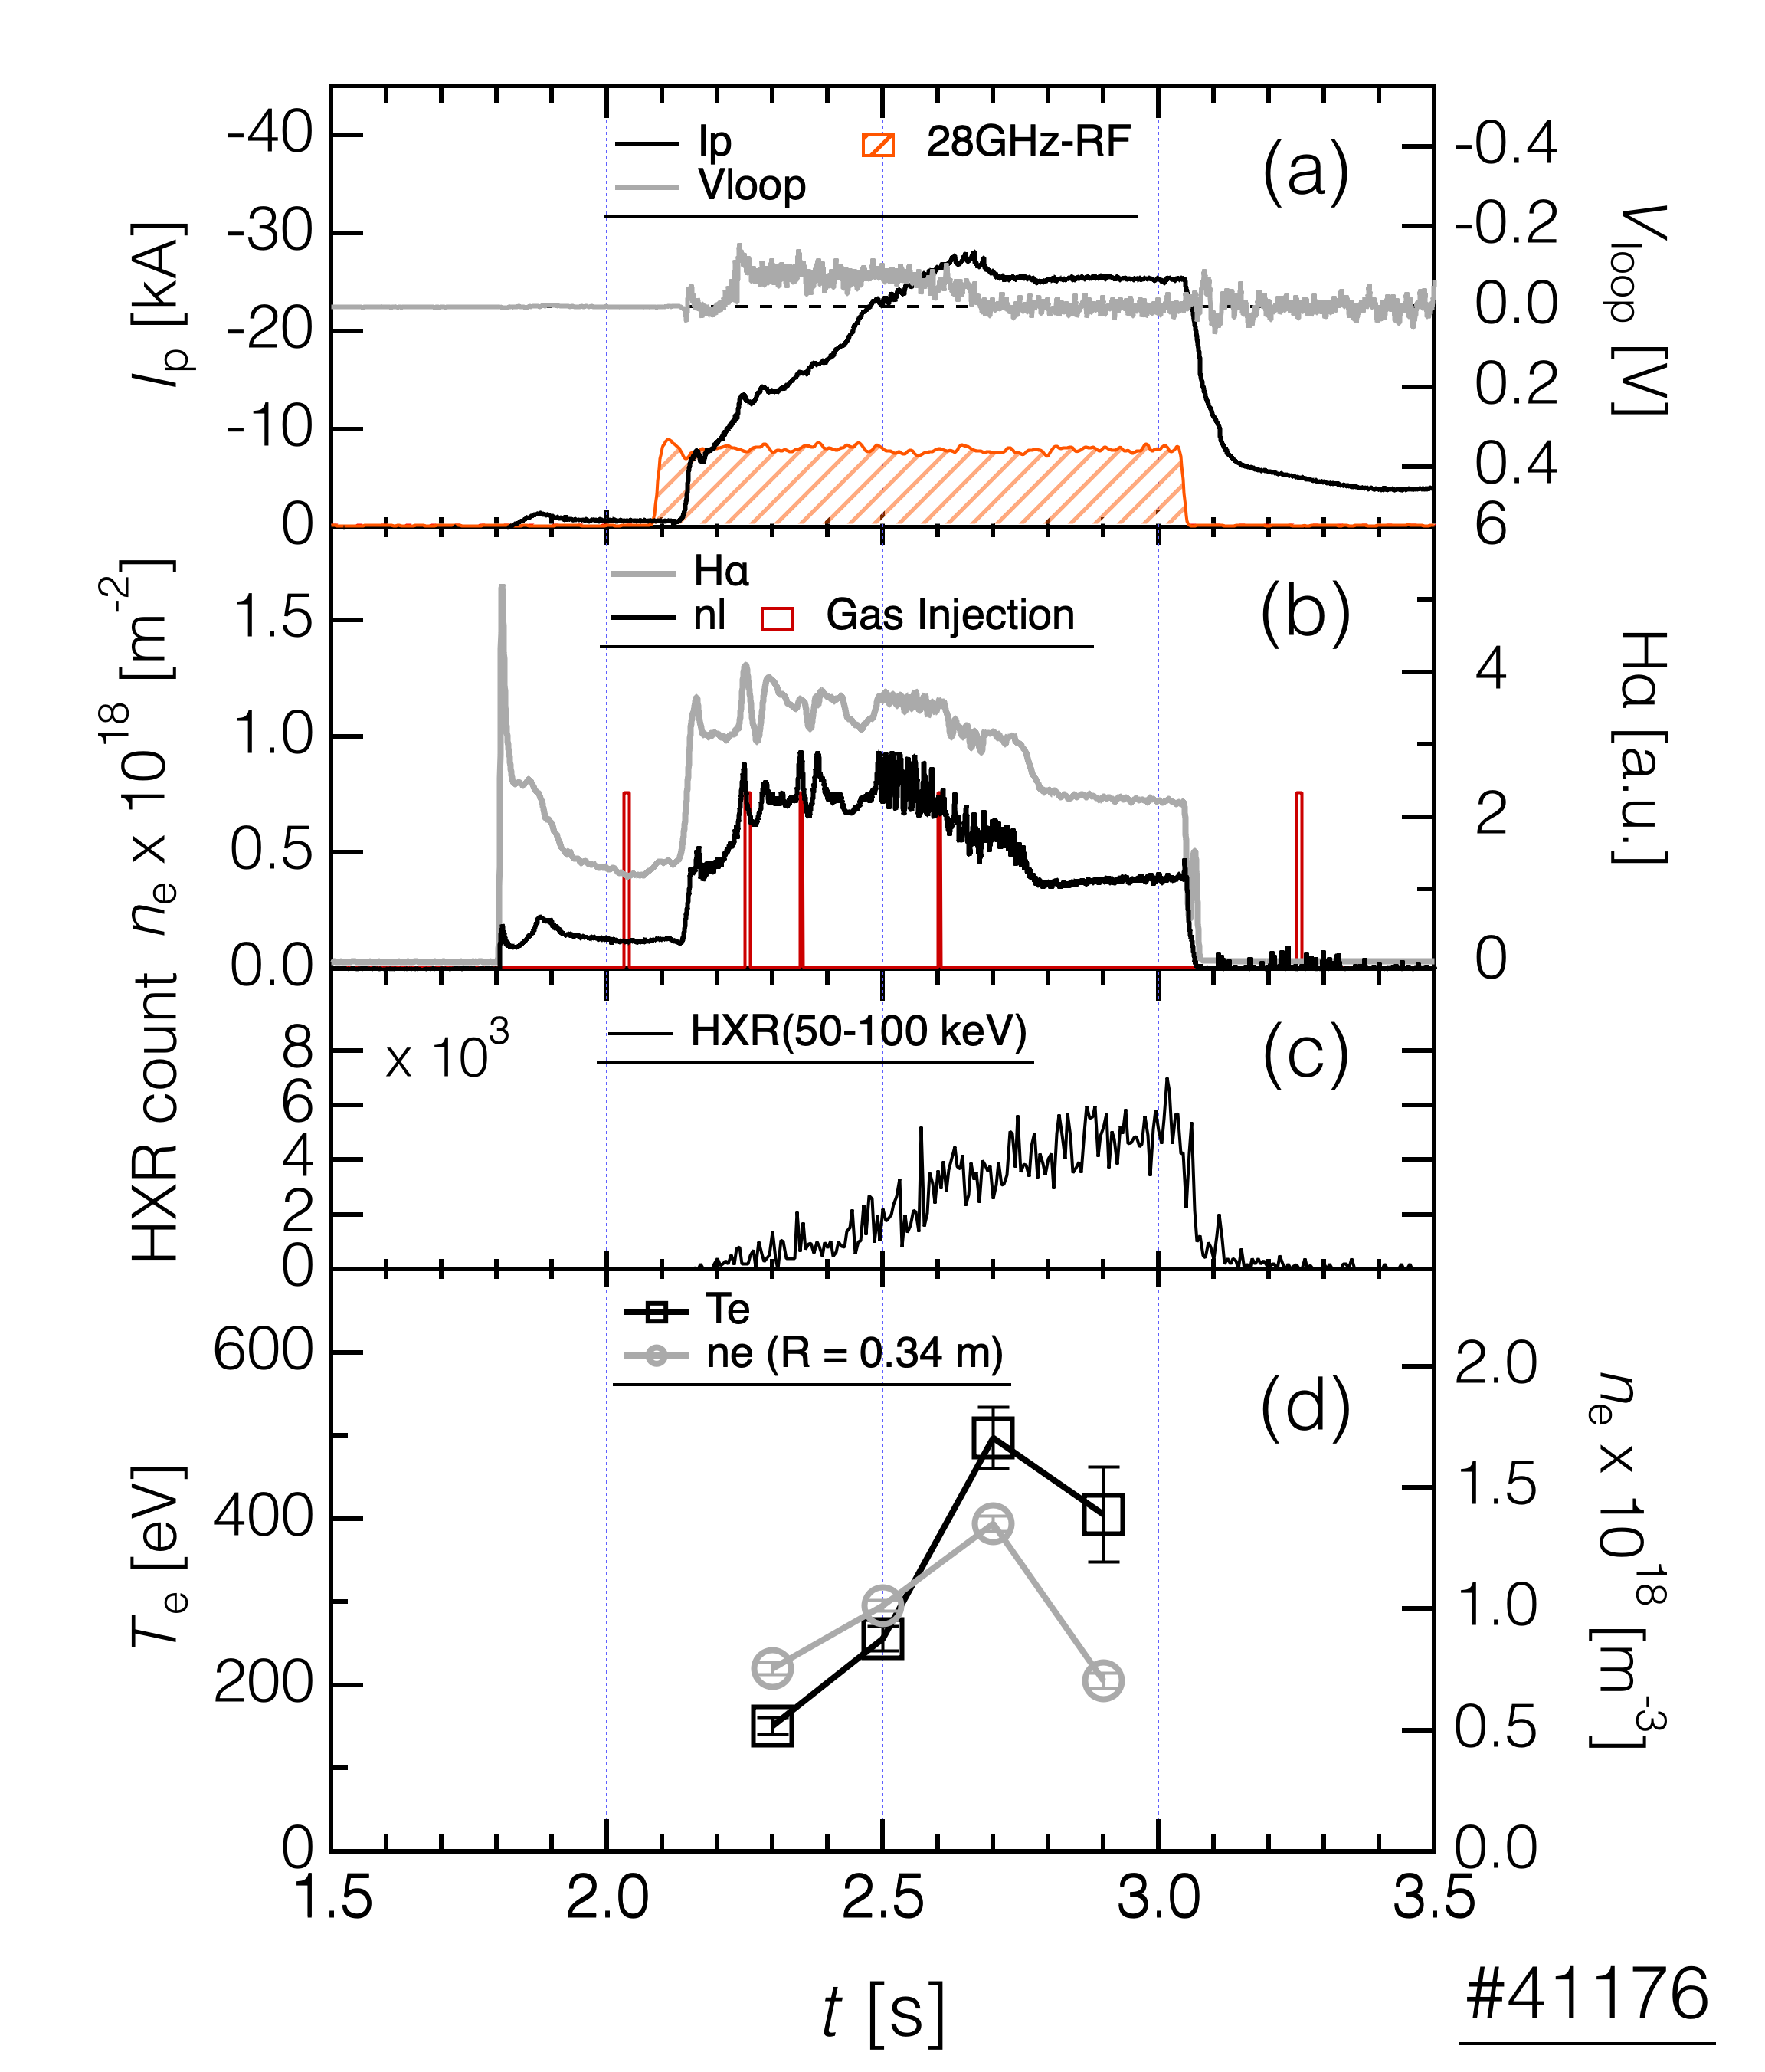 Waveforms of (a) plasma current and loop voltage, (b) line-integrated electron density and H$\alpha$ emission, (c) count of HXR (50-100 keV), and (e) electron temperature and density at $R$ = 0.34 m measured through Thomson scattering. EC wave was injected as $R$ = 0.11 at $R$ = 0.32 m.